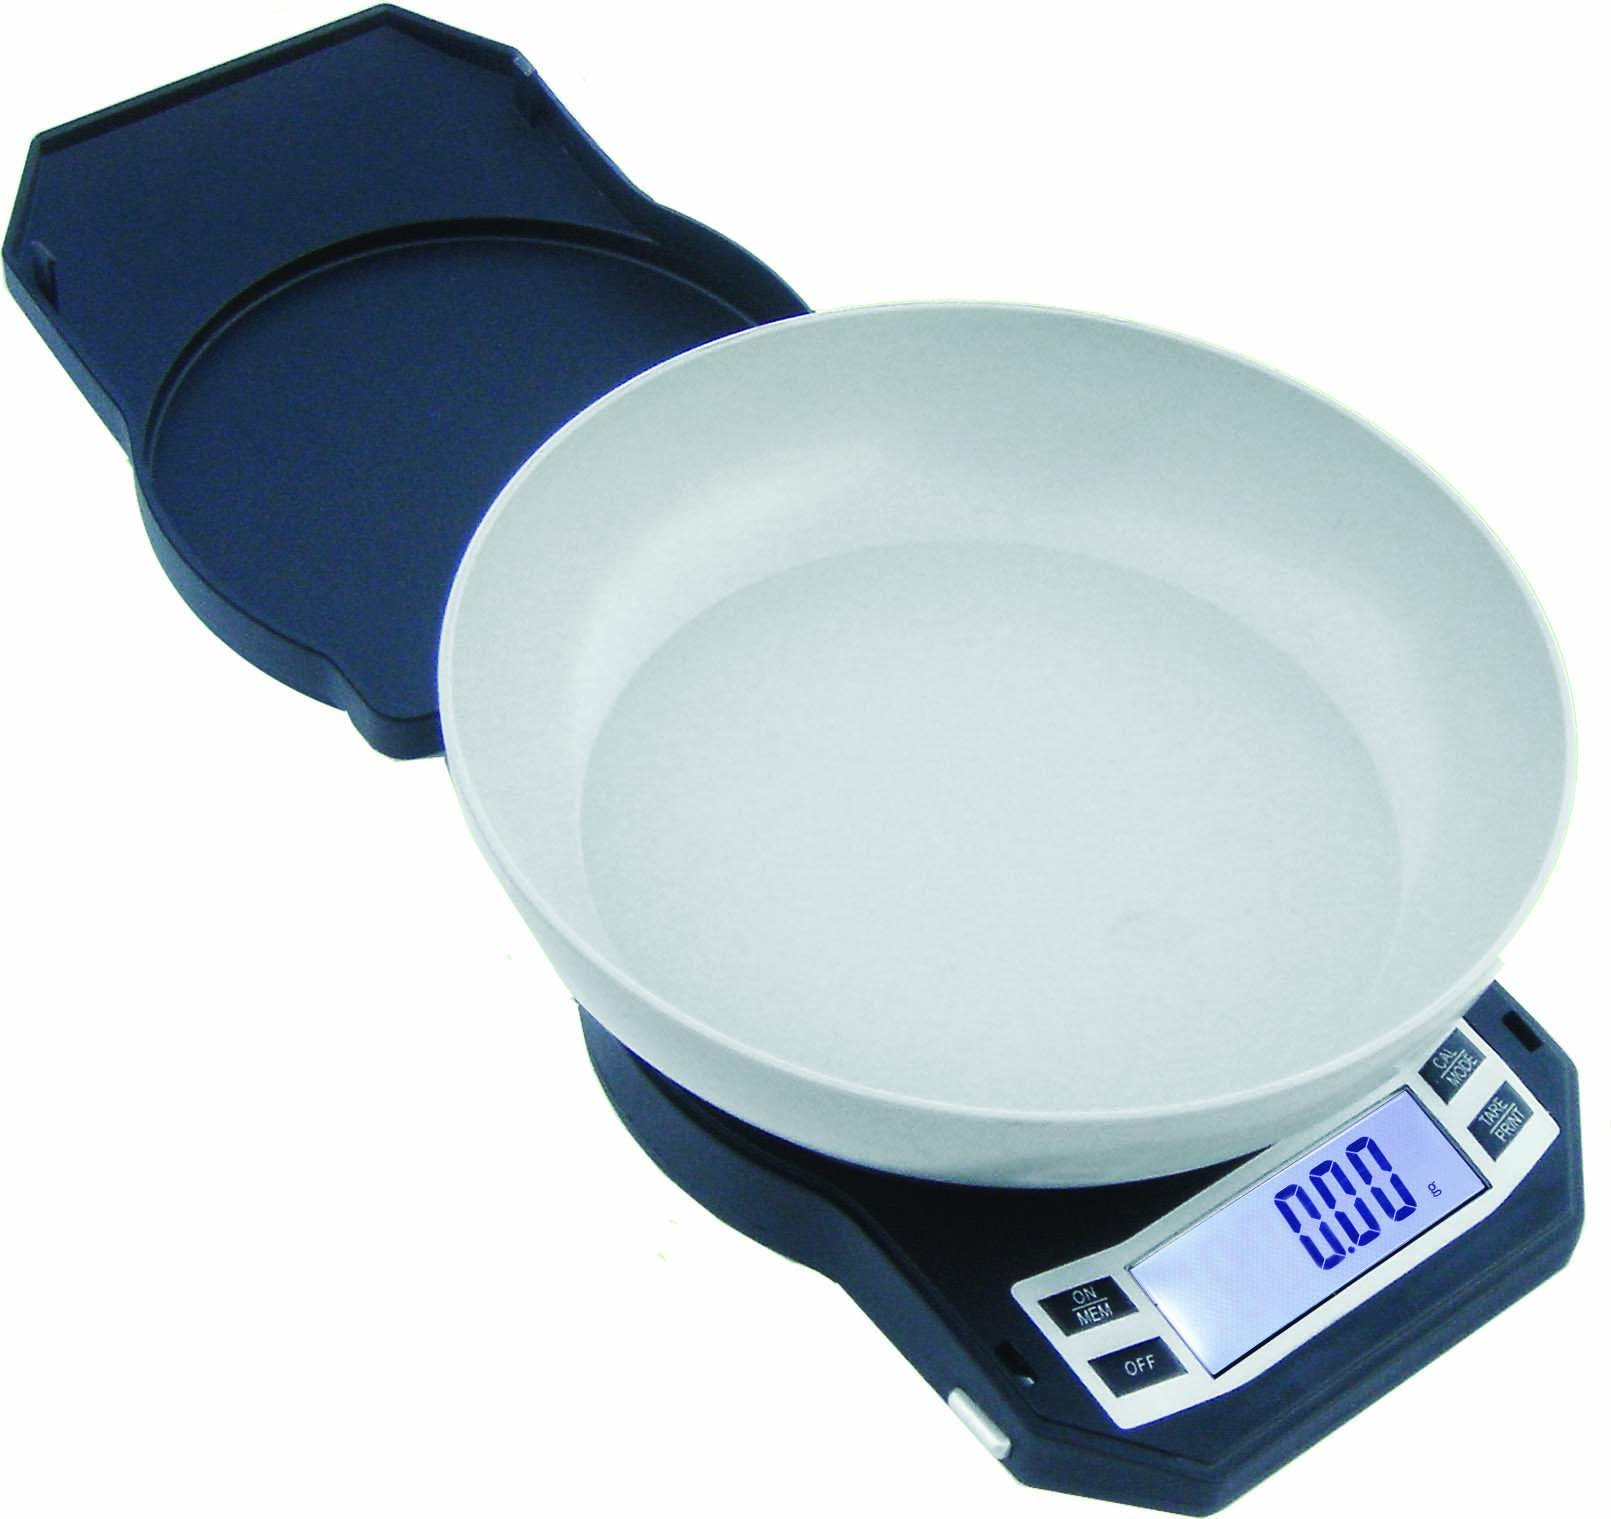 American Weigh Scales LB Series Precision Digital Kitchen Weight Scale, Gray 500 x 0.01G (LB-501) by AMERICAN WEIGH SCALES